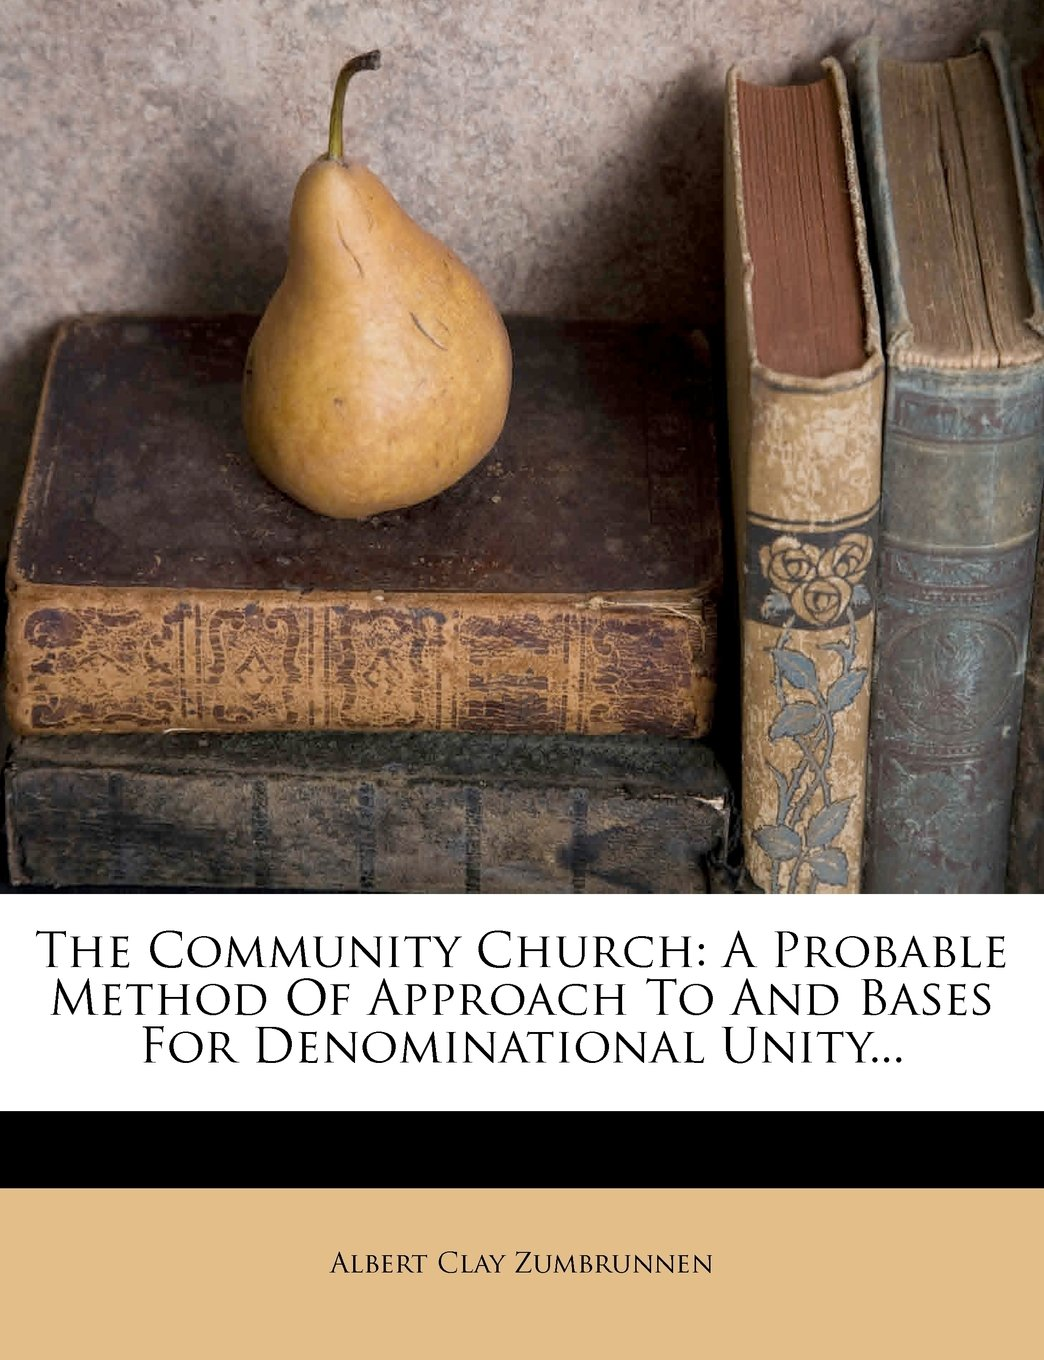 The Community Church: A Probable Method Of Approach To And Bases For Denominational Unity... PDF